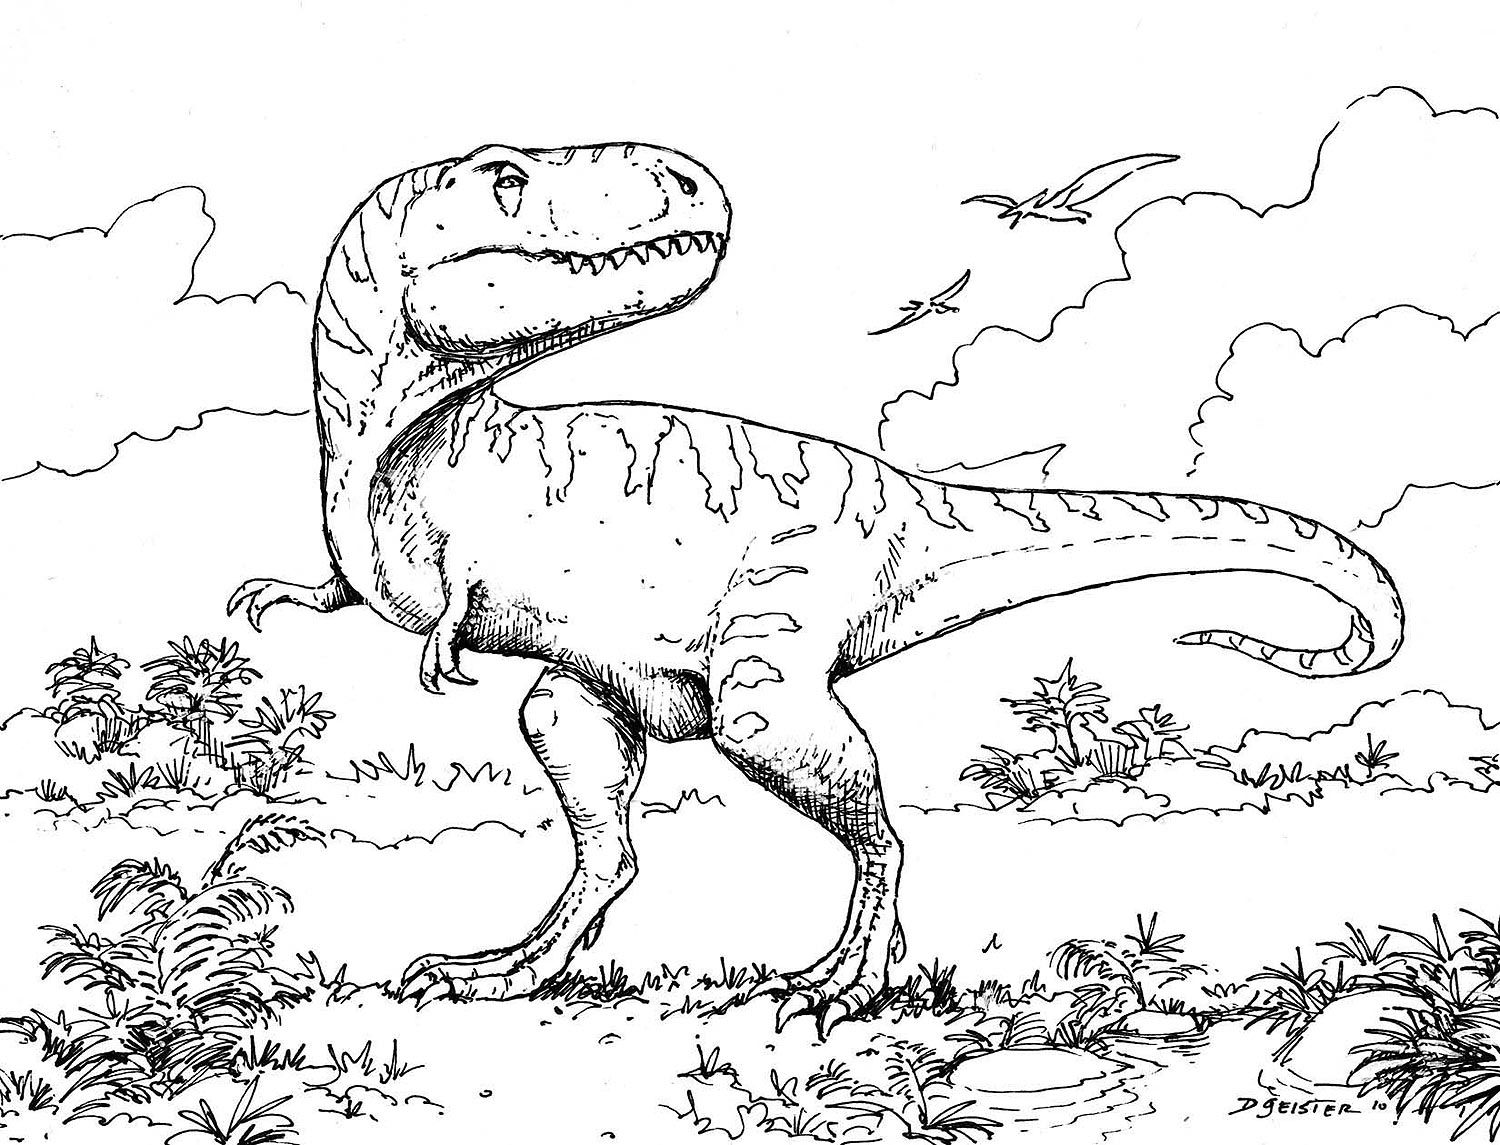 Attirant Free Printable Dinosaur Coloring Pages For Kids